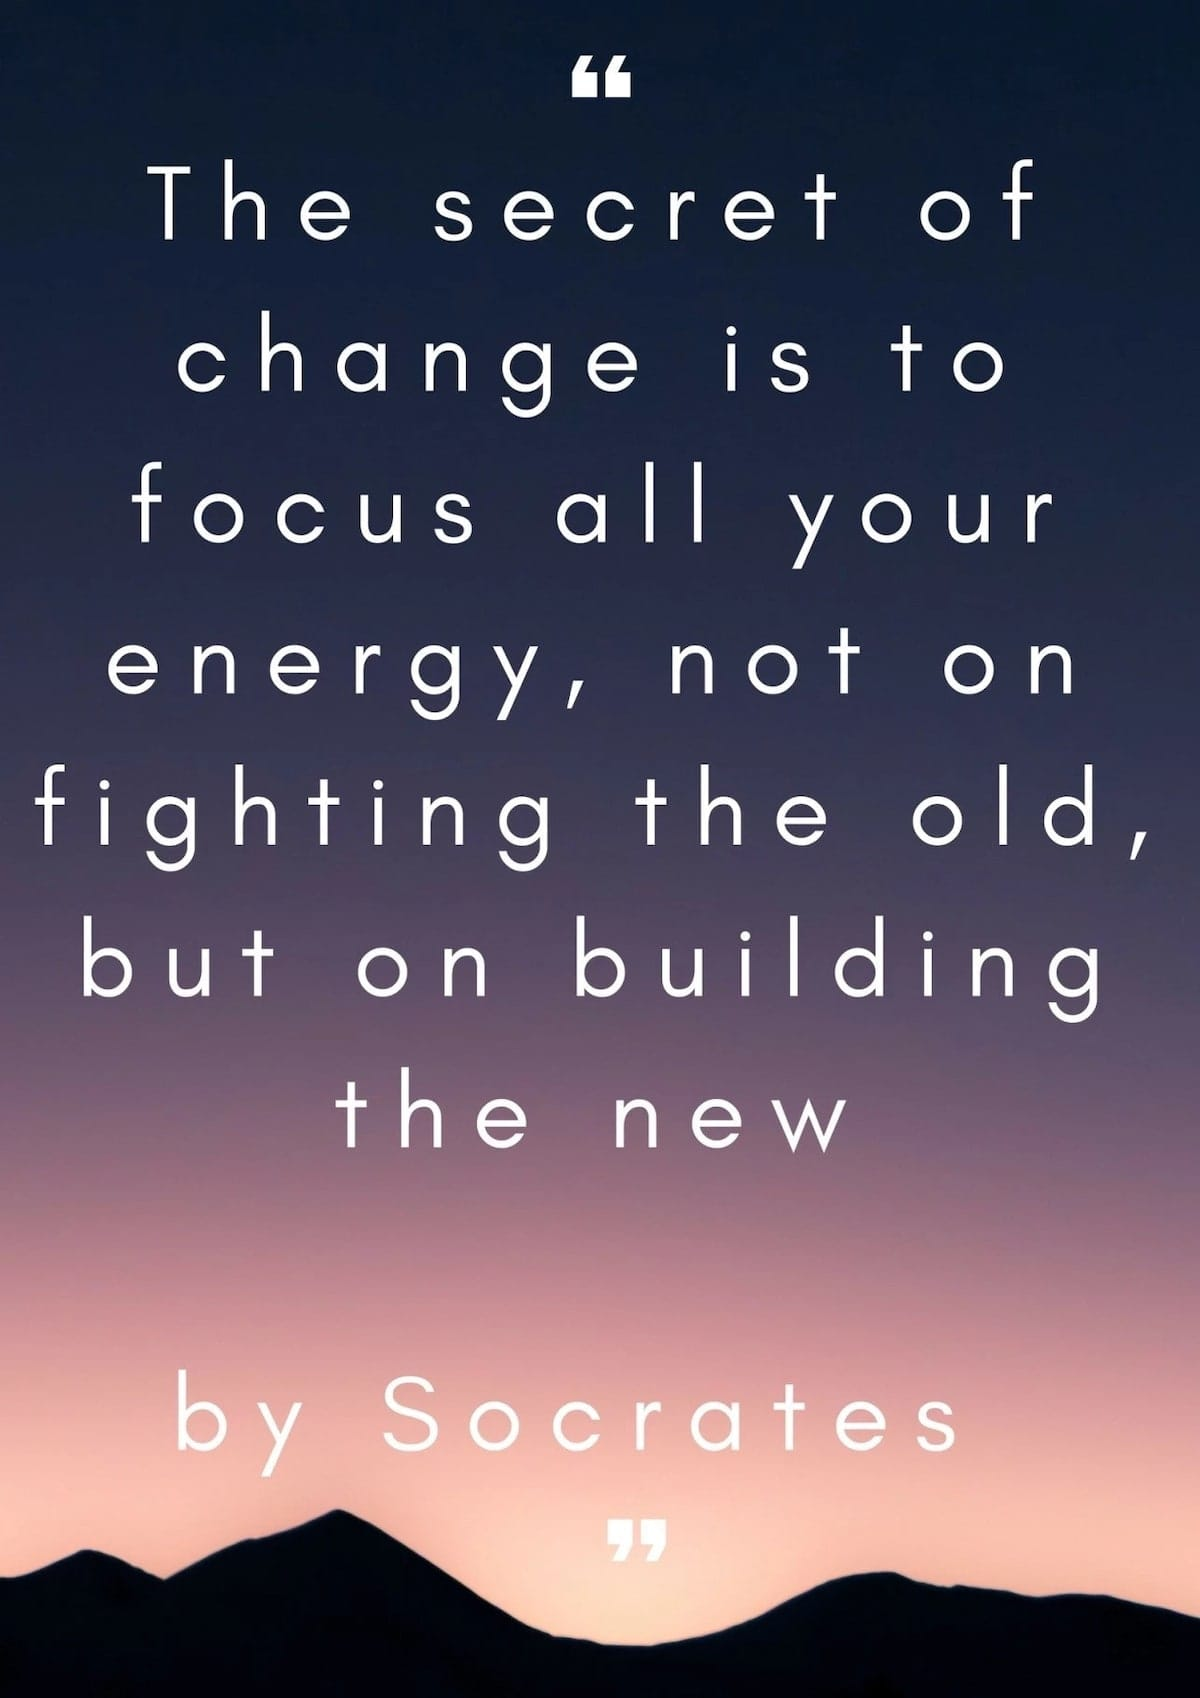 Business quotes about change Famous quotes about change Funny quotes about change Quotes about change  Best quotes about change